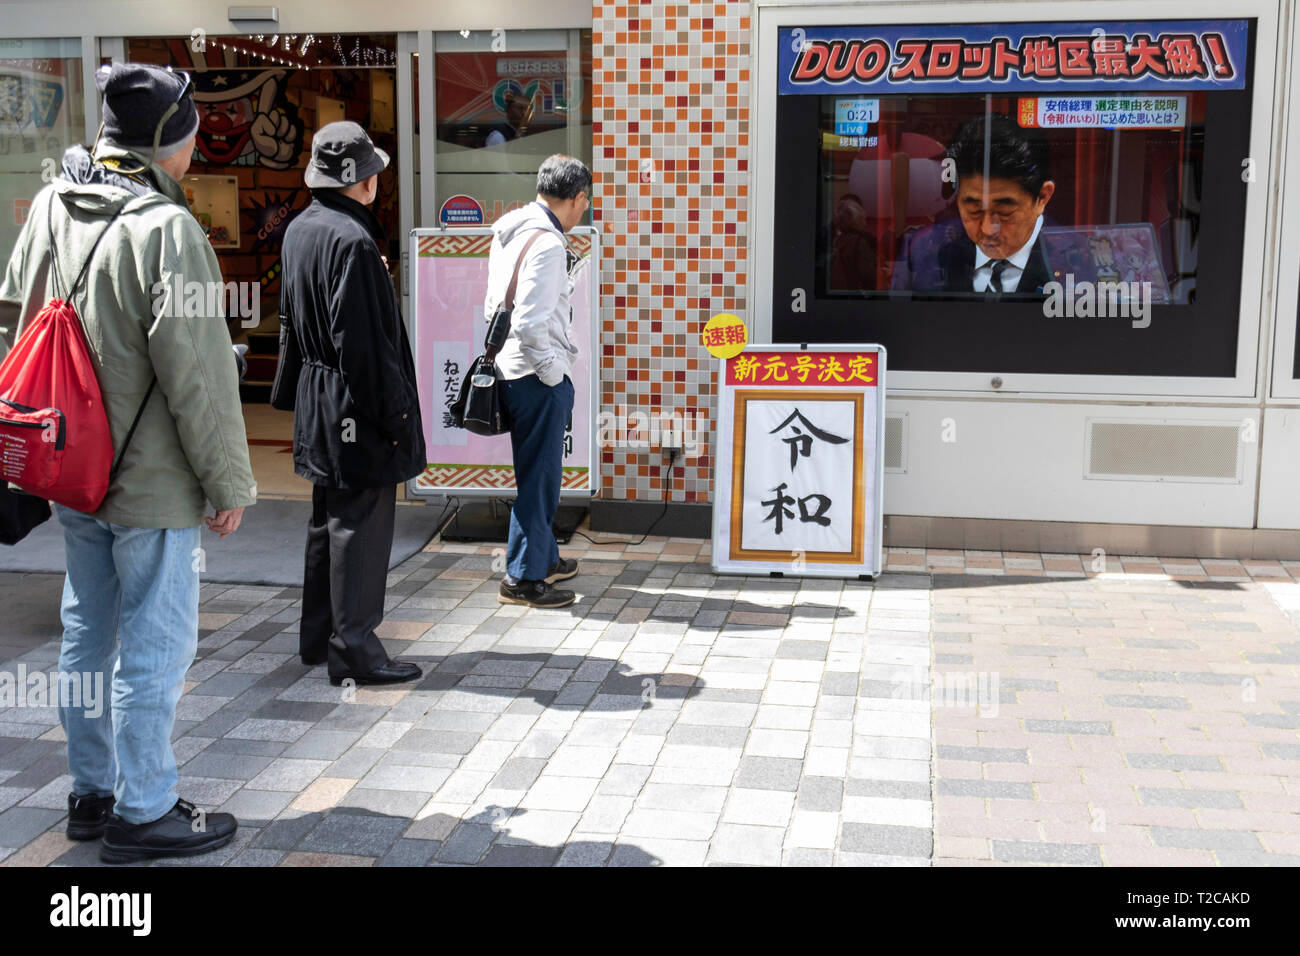 Tokyo, Japan. 1st Apr, 2019. Tokyo, Japan. 01st Apr, 2019. People look at a screen displaying the Japan's Prime Minister Shinzo Abe speaking about the new name ''Reiwa'' for the next Imperial era, in downtown Tokyo. Japanese Chief Cabinet Secretary Yoshihide Suga announced ''Reiwa'' as new Imperial era name today, April 1st. The new era will start on May 1st when the Crown Prince Naruhito ascends the throne, after his father, Emperor Akihito, formally abdicates on April 30. Credit: Rodrigo Reyes Marin/AFLO/Alamy Live News - Stock Image